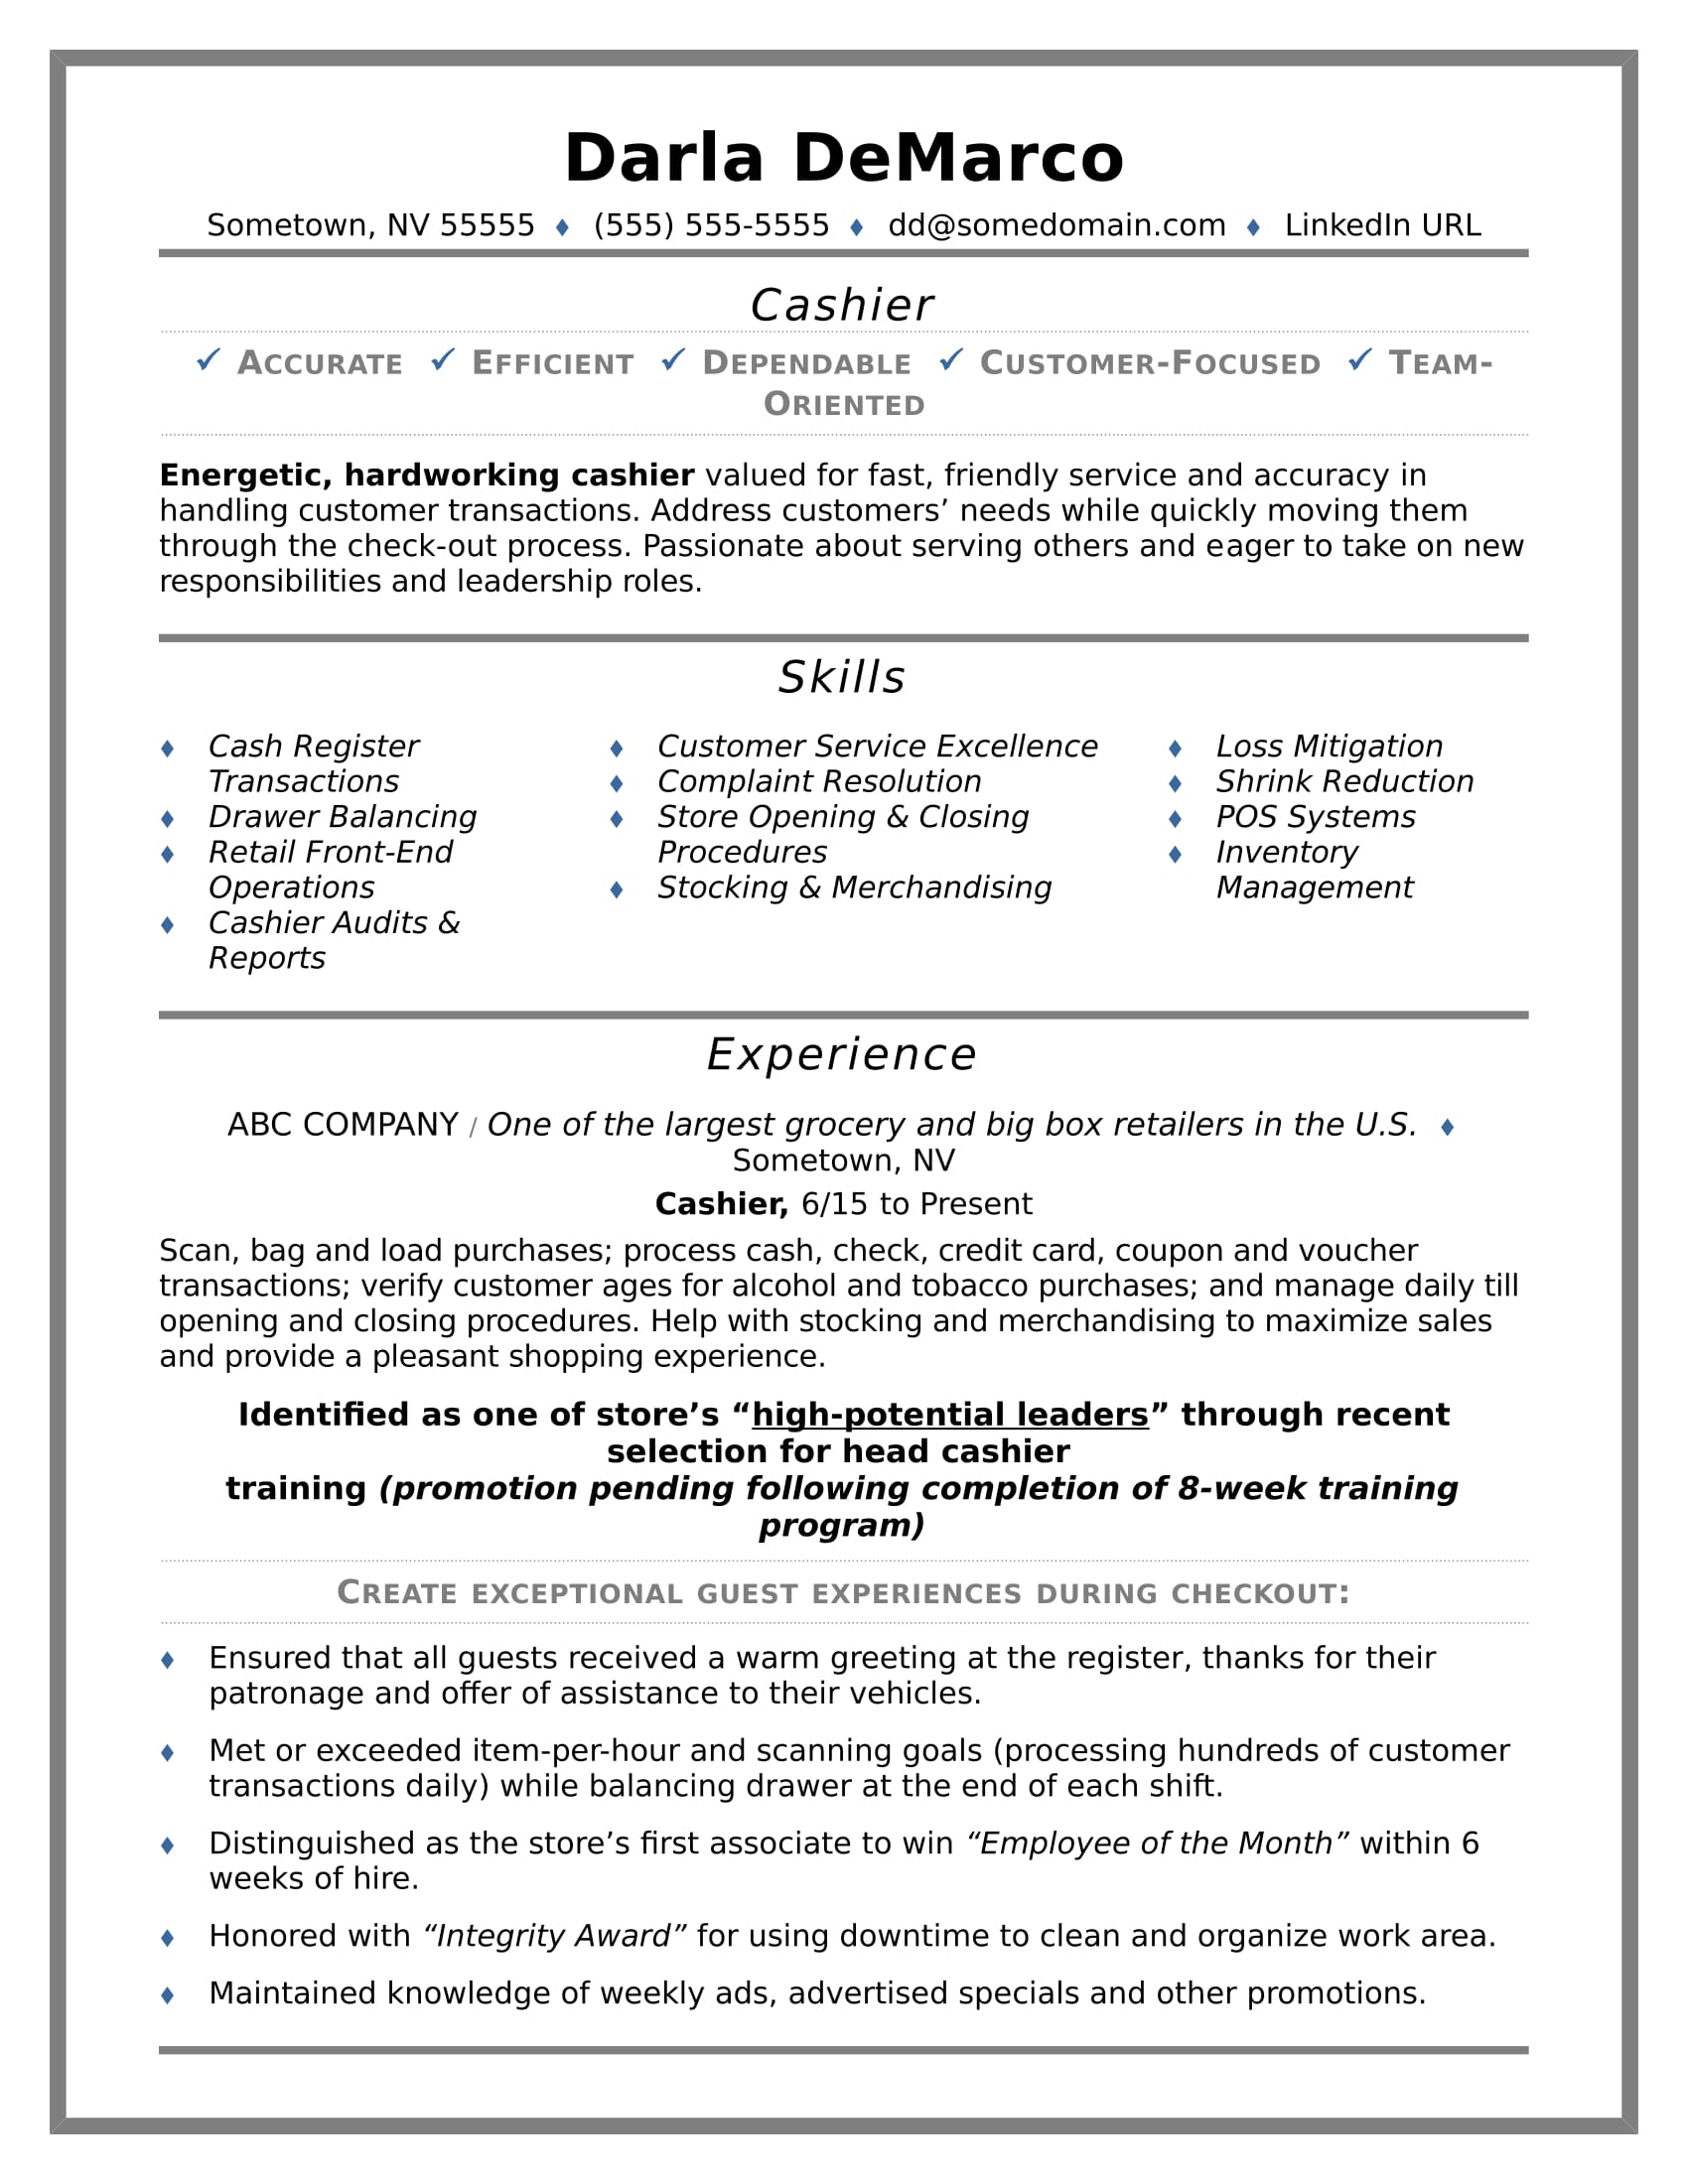 Cashier Job Experience Resume Cashier Resume Sample Monster